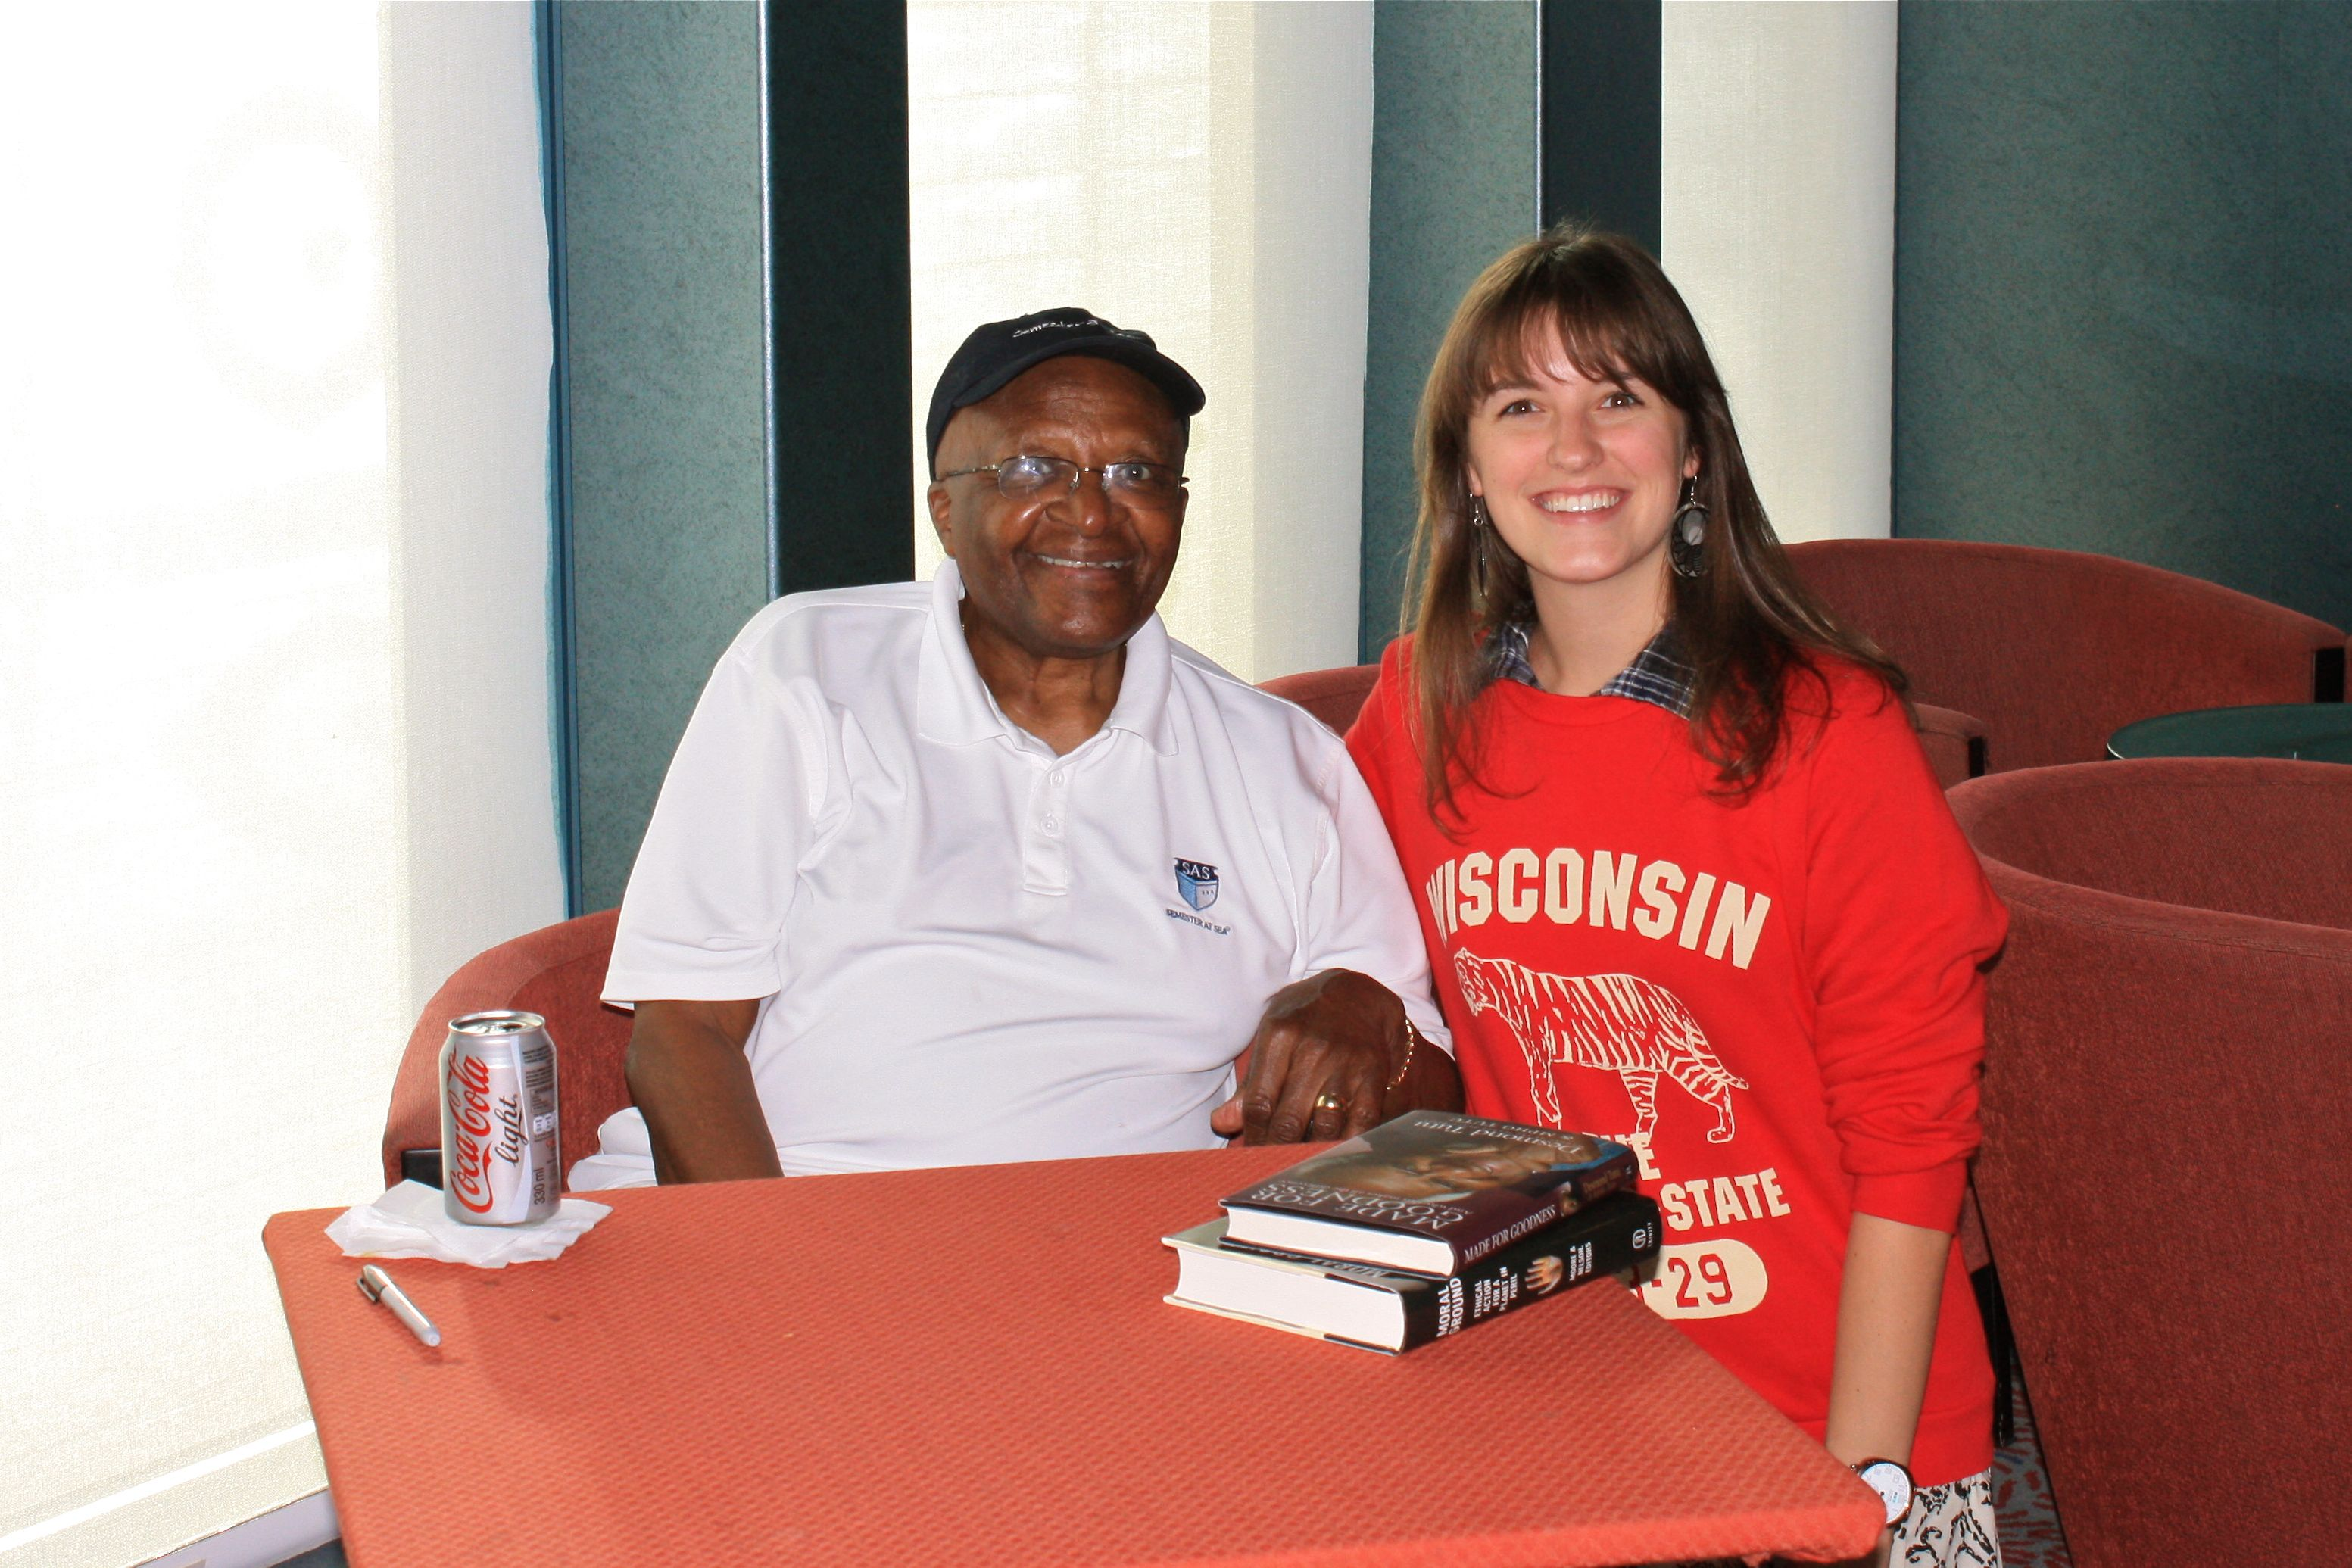 Young White Student with Archbishop Desmond Tutu on Semester at Sea